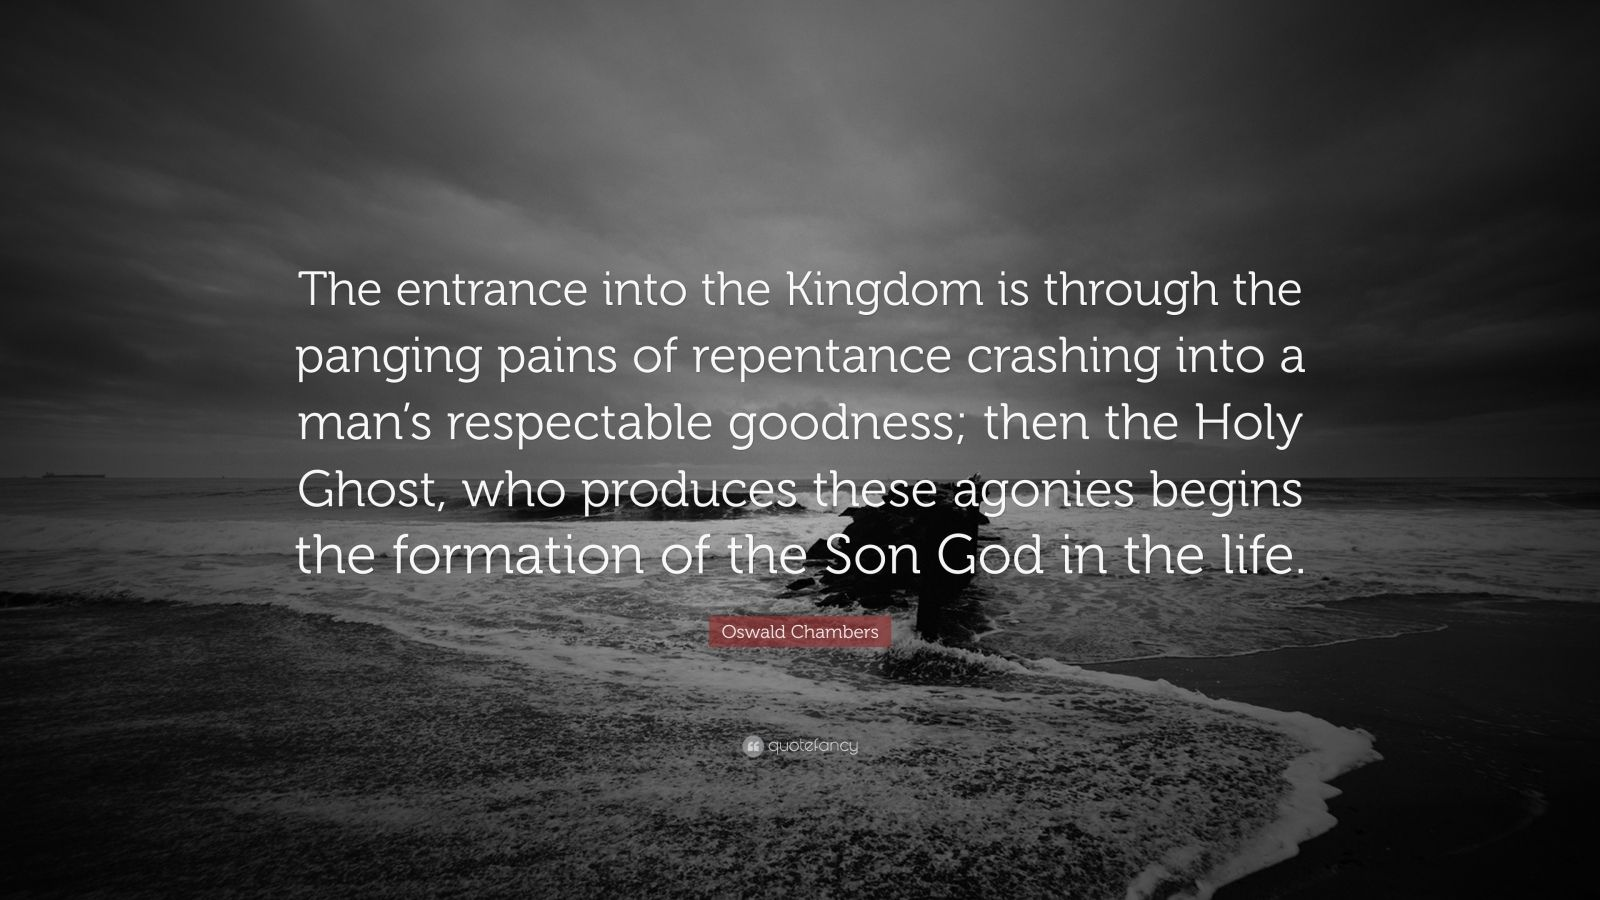 "Oswald Chambers Quote: ""The entrance into the Kingdom is through the panging pains of repentance crashing into a man's respectable goodness; then the Holy Ghost, who produces these agonies begins the formation of the Son God in the life."""